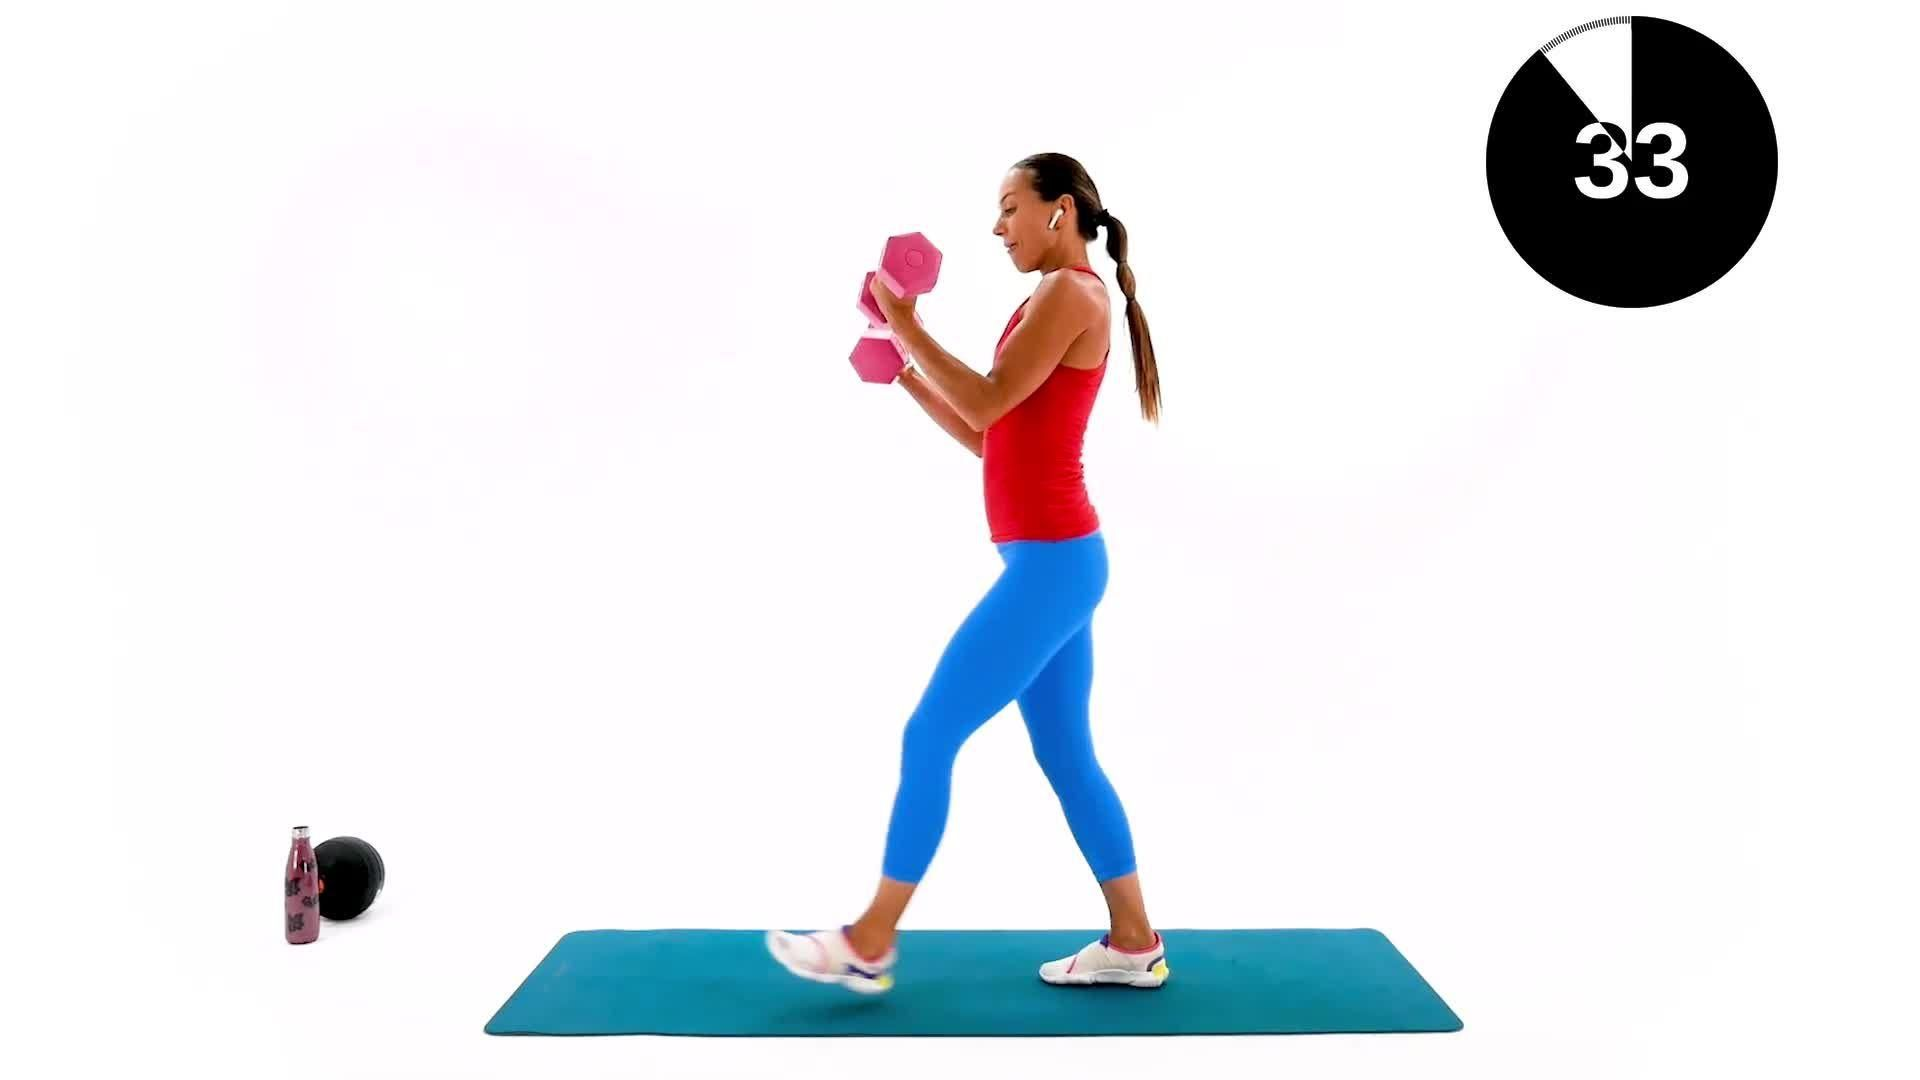 Strength Training Workout for Muscle Tone and Weight Loss #8 Juliette Wooten